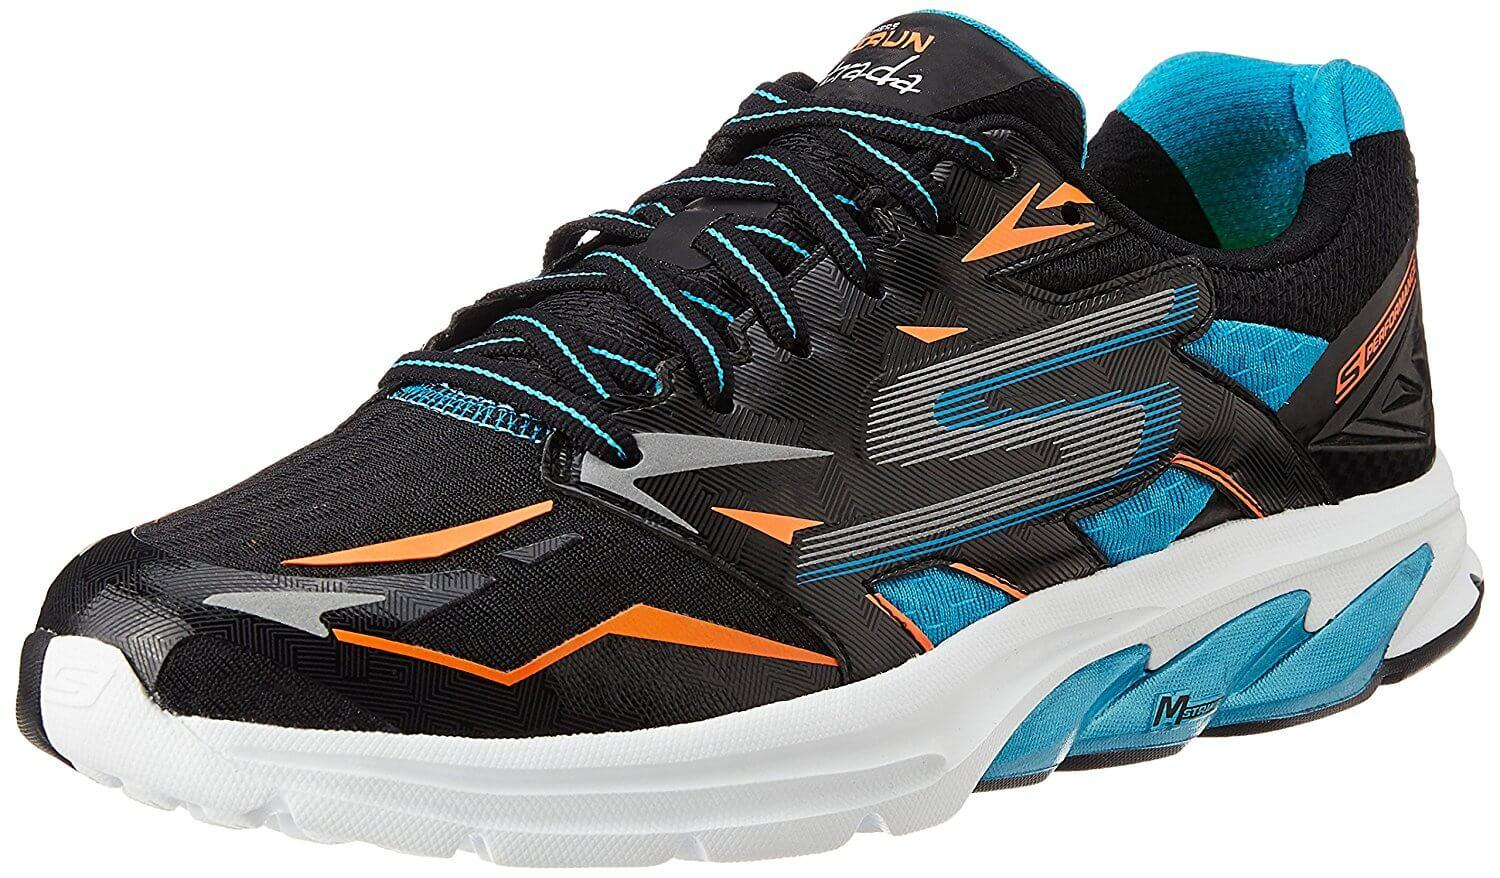 d172a71a2 Skechers GOrun Strada Review - Buy or Not in July 2019?